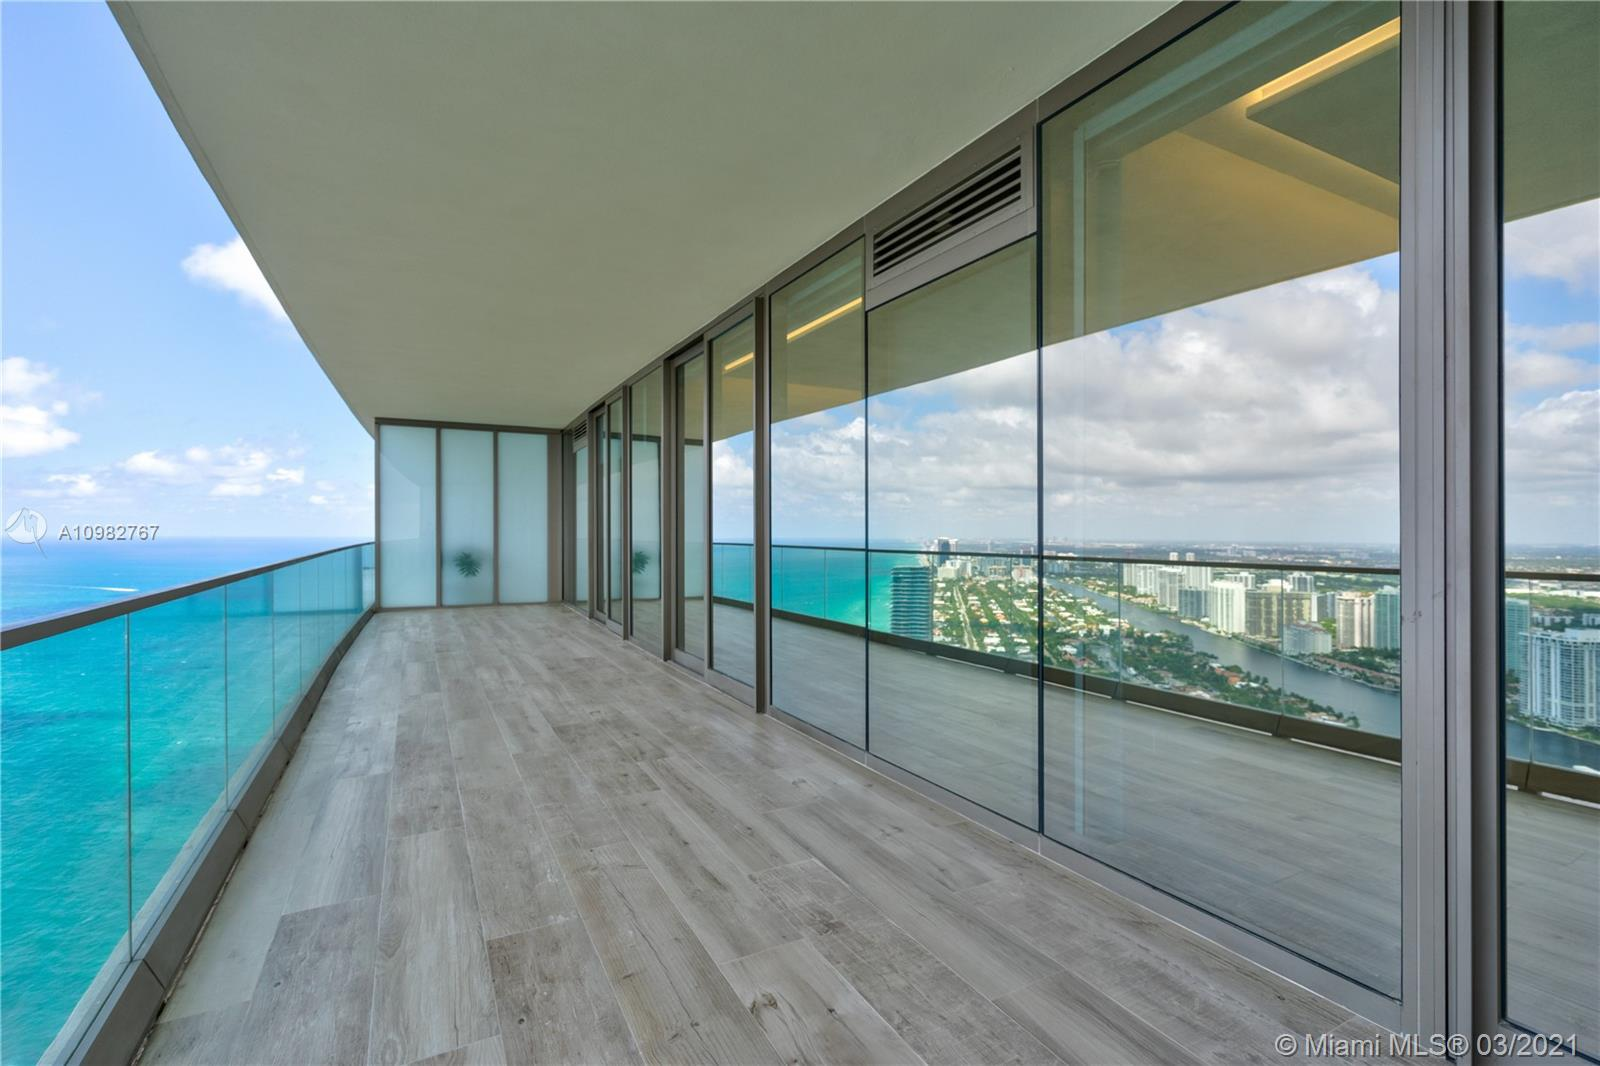 Welcome to the brand new Residences By Armani Casa Miami. This 4 bedrooms, 5.5 bathroom + den flow through residence features floor to ceiling windows, split floor plan, large balconies, summer kitchen and more. Enjoy your unobstructed views of the Atlantic Ocean and sunset views of the Intracoastal. Exceptional amenities and 5 star service which includes oceanfront Pool & Bar, Restaurant, Spa & Fitness Center, Grand Lobby and Bar Lounge, Movie theater, Cigar and Wine Room, Children's play area, Concierge, Security and Valet and more. Unit is rented for one year until March 2022.